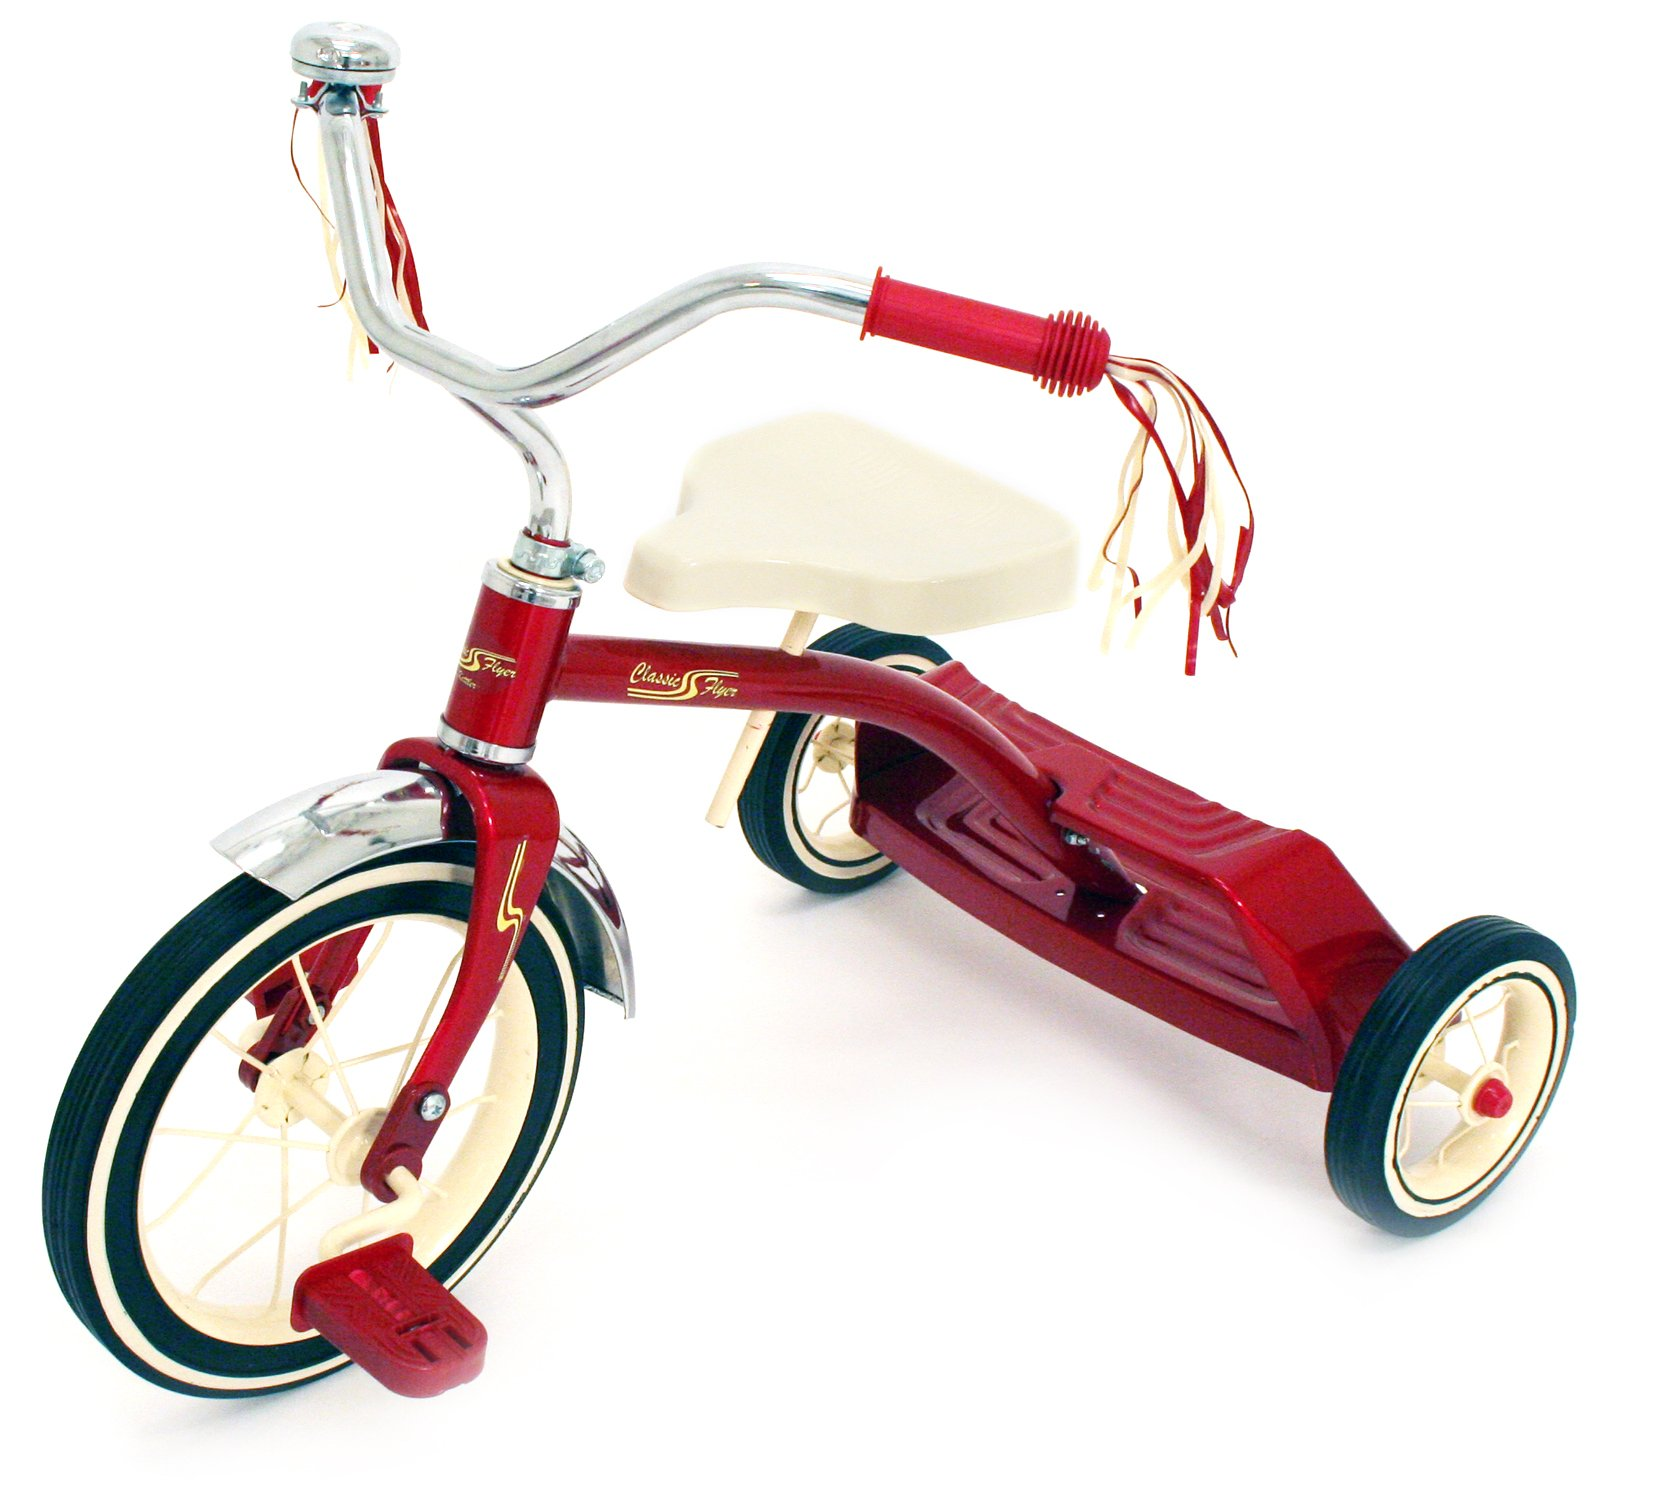 Kettler Classic Flyer by 12'' Retro Trike with Adjustable Seat: Candy Apple Red, Youth Ages 1.5 to 4 by Kettler (Image #1)